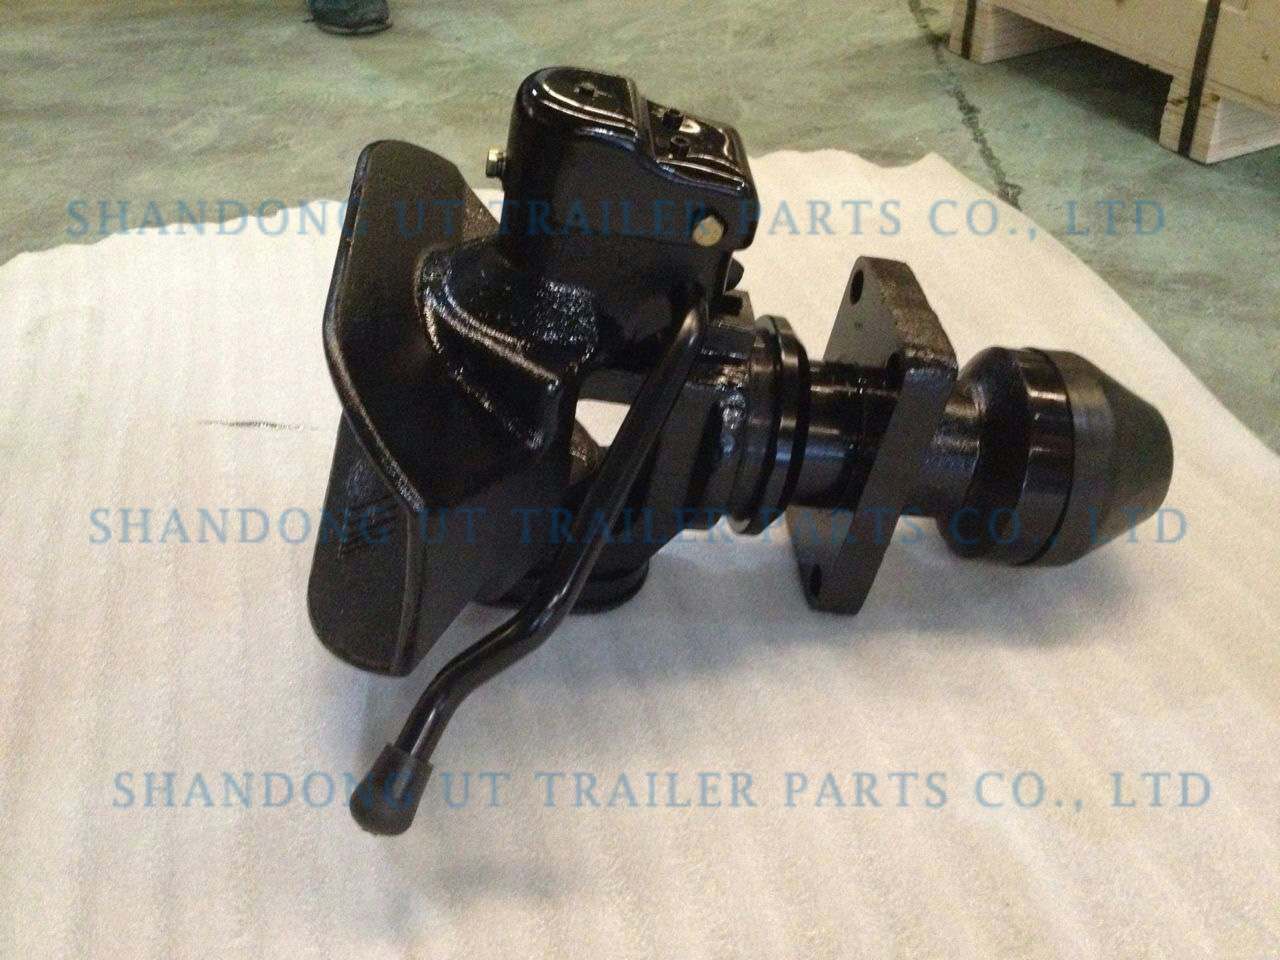 UTTC60 Automatic Trailer Coupling